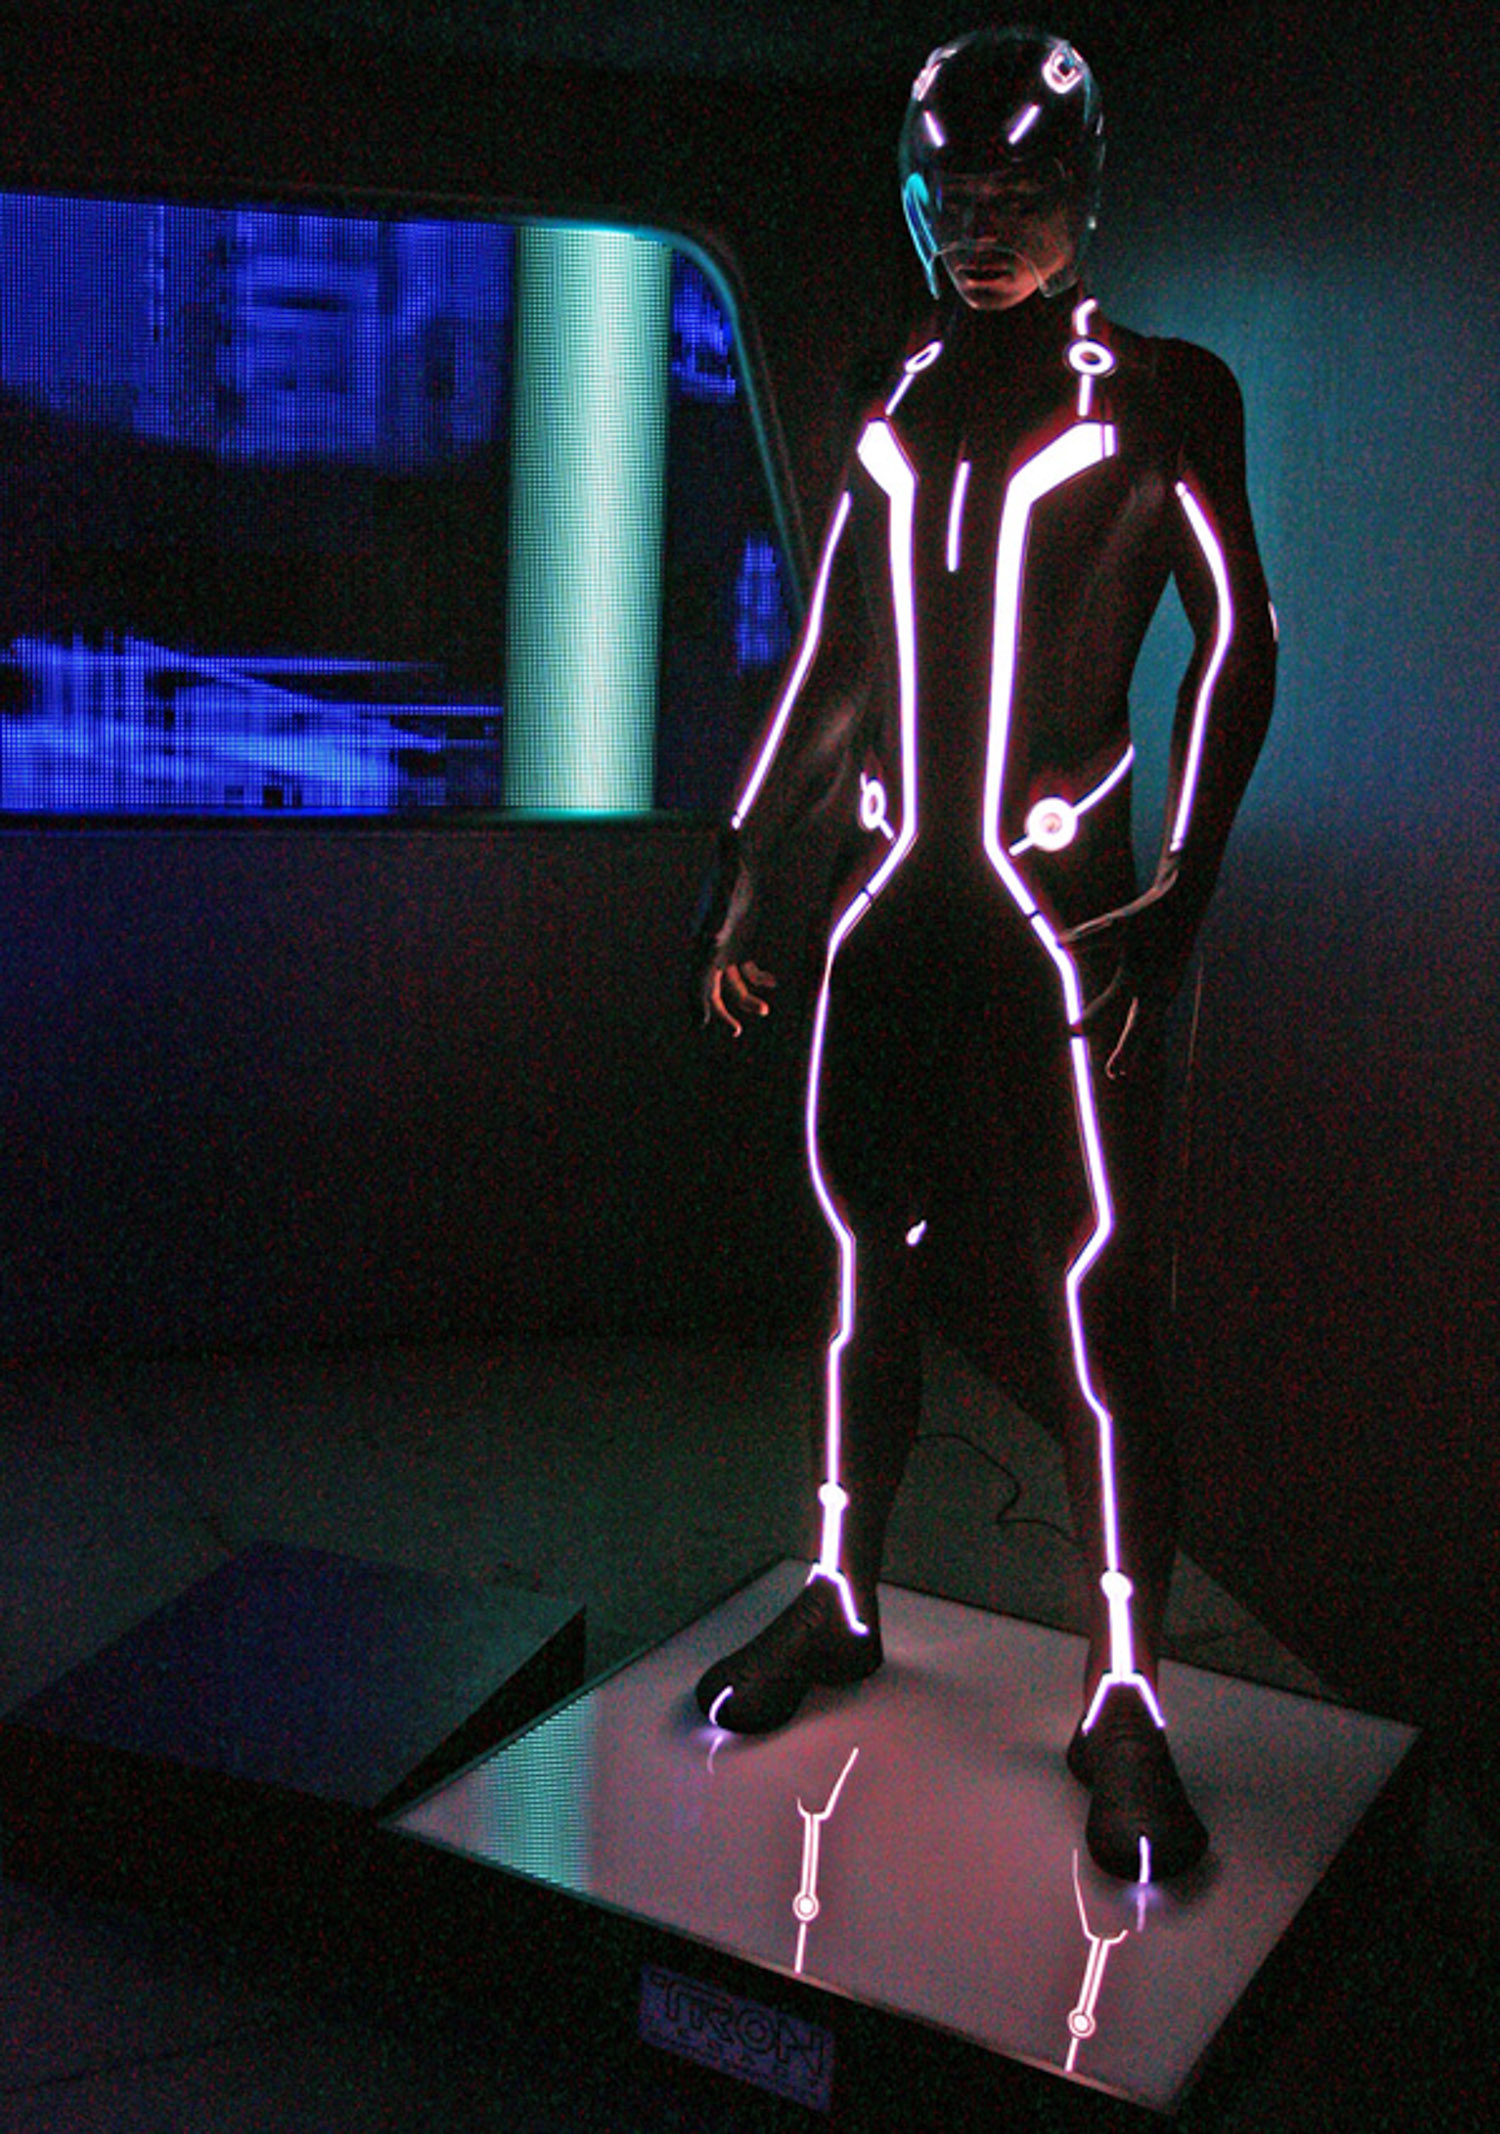 tron-comic-con-hunter-leggitt-studio-21.jpg